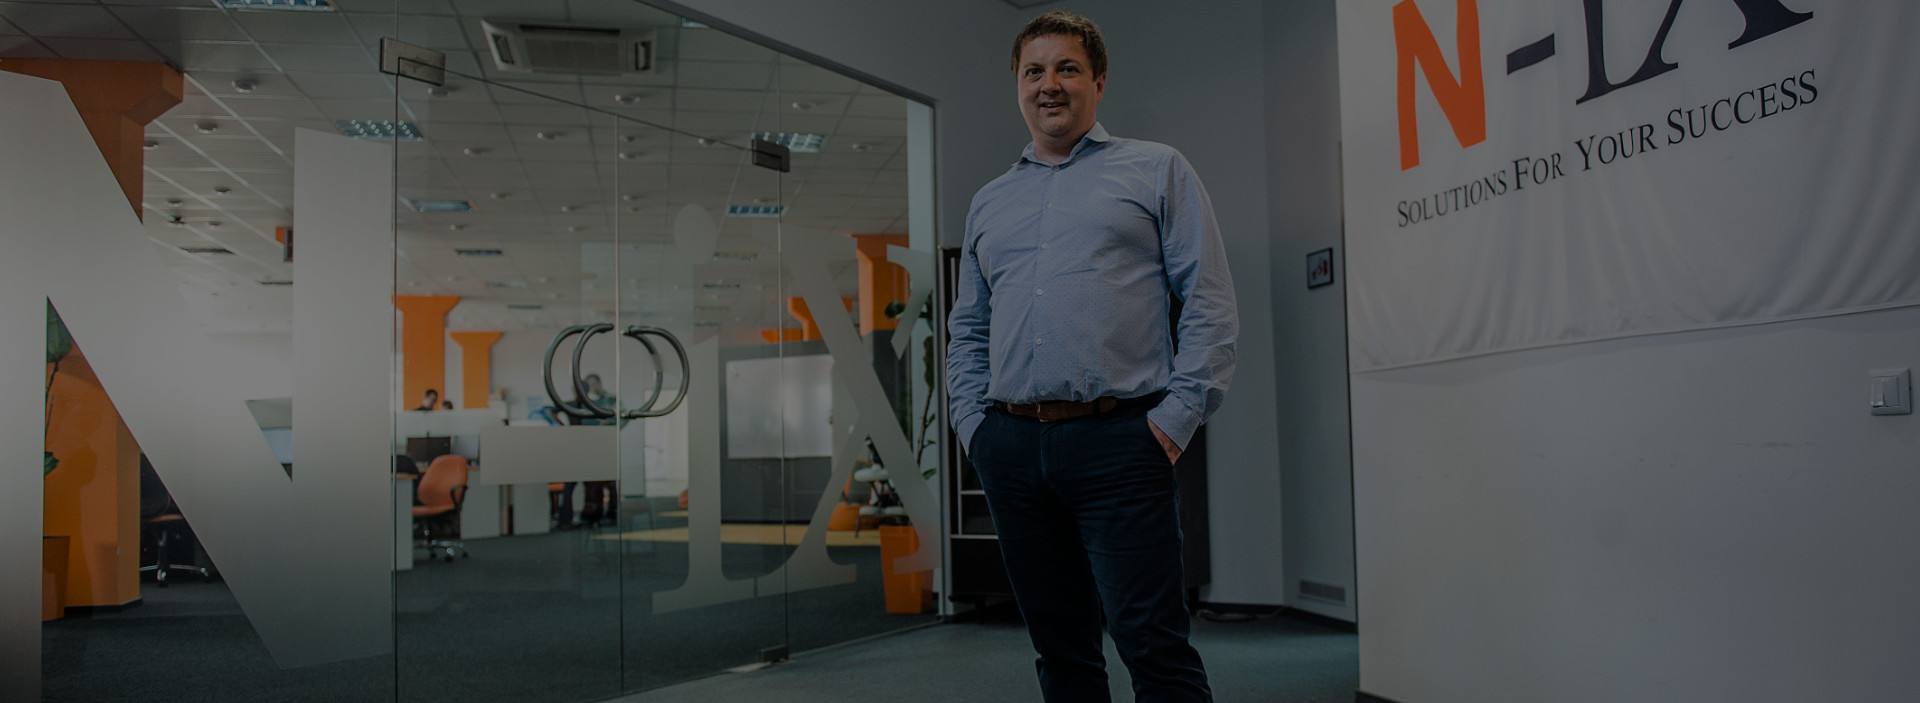 """N-iX founder Andrew Pavliv: """"The IT industry is raising a conscious middle class with good earnings. """""""